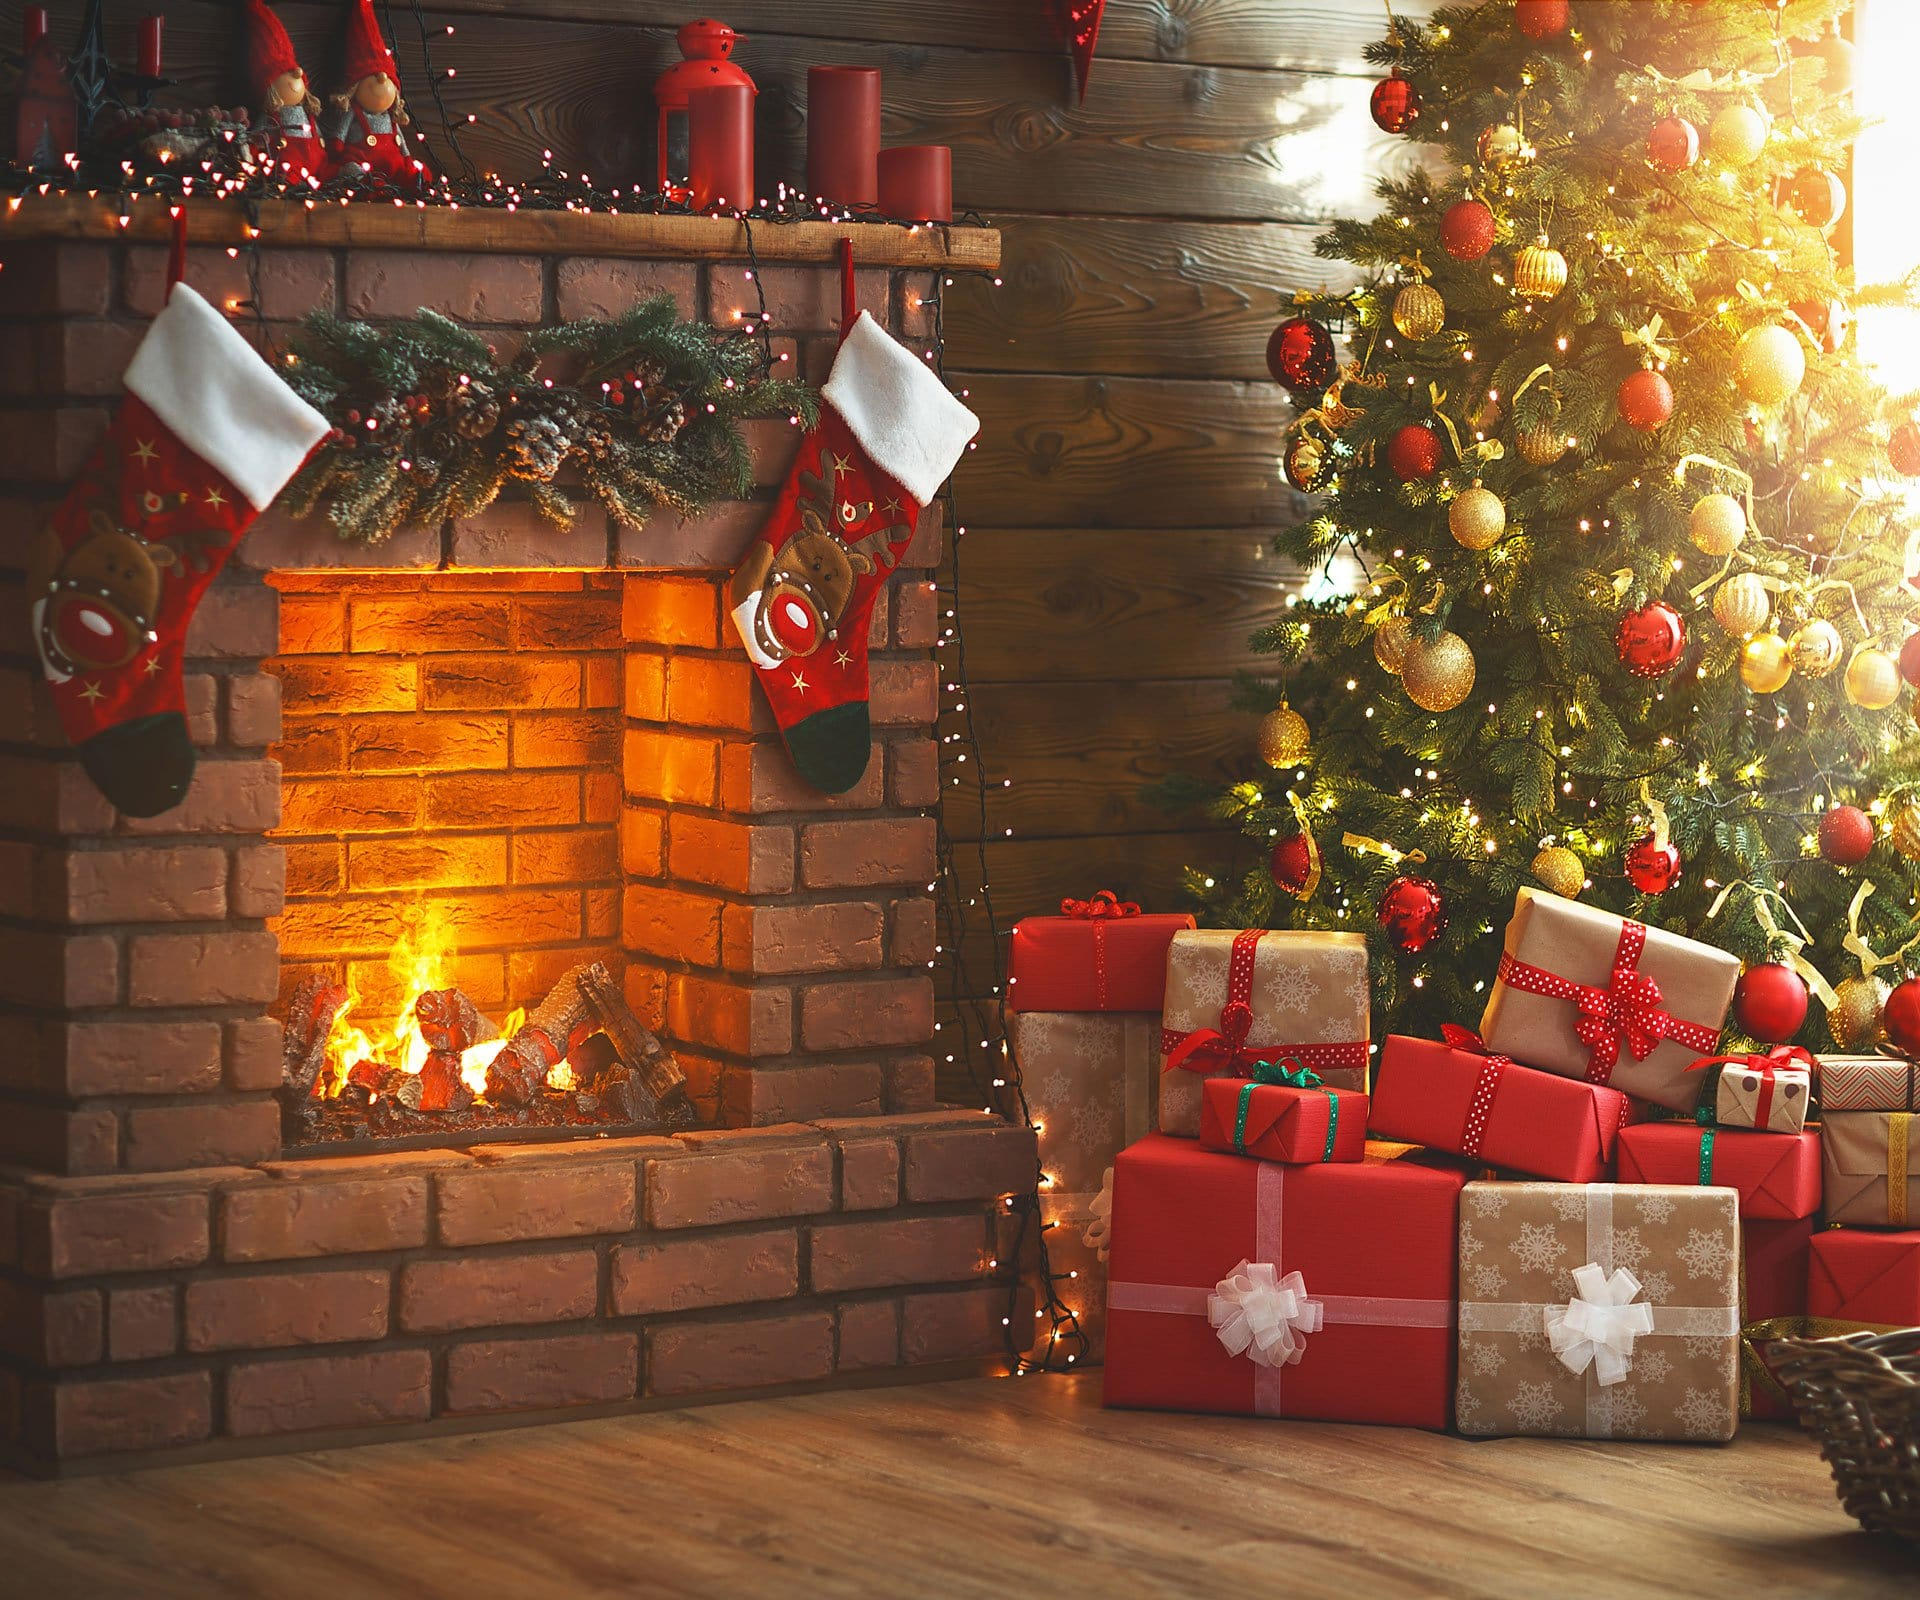 Load image into Gallery viewer, Kate Winter Christmas trees  Fireplace  Stockings  Christmas Gifts for Pictures